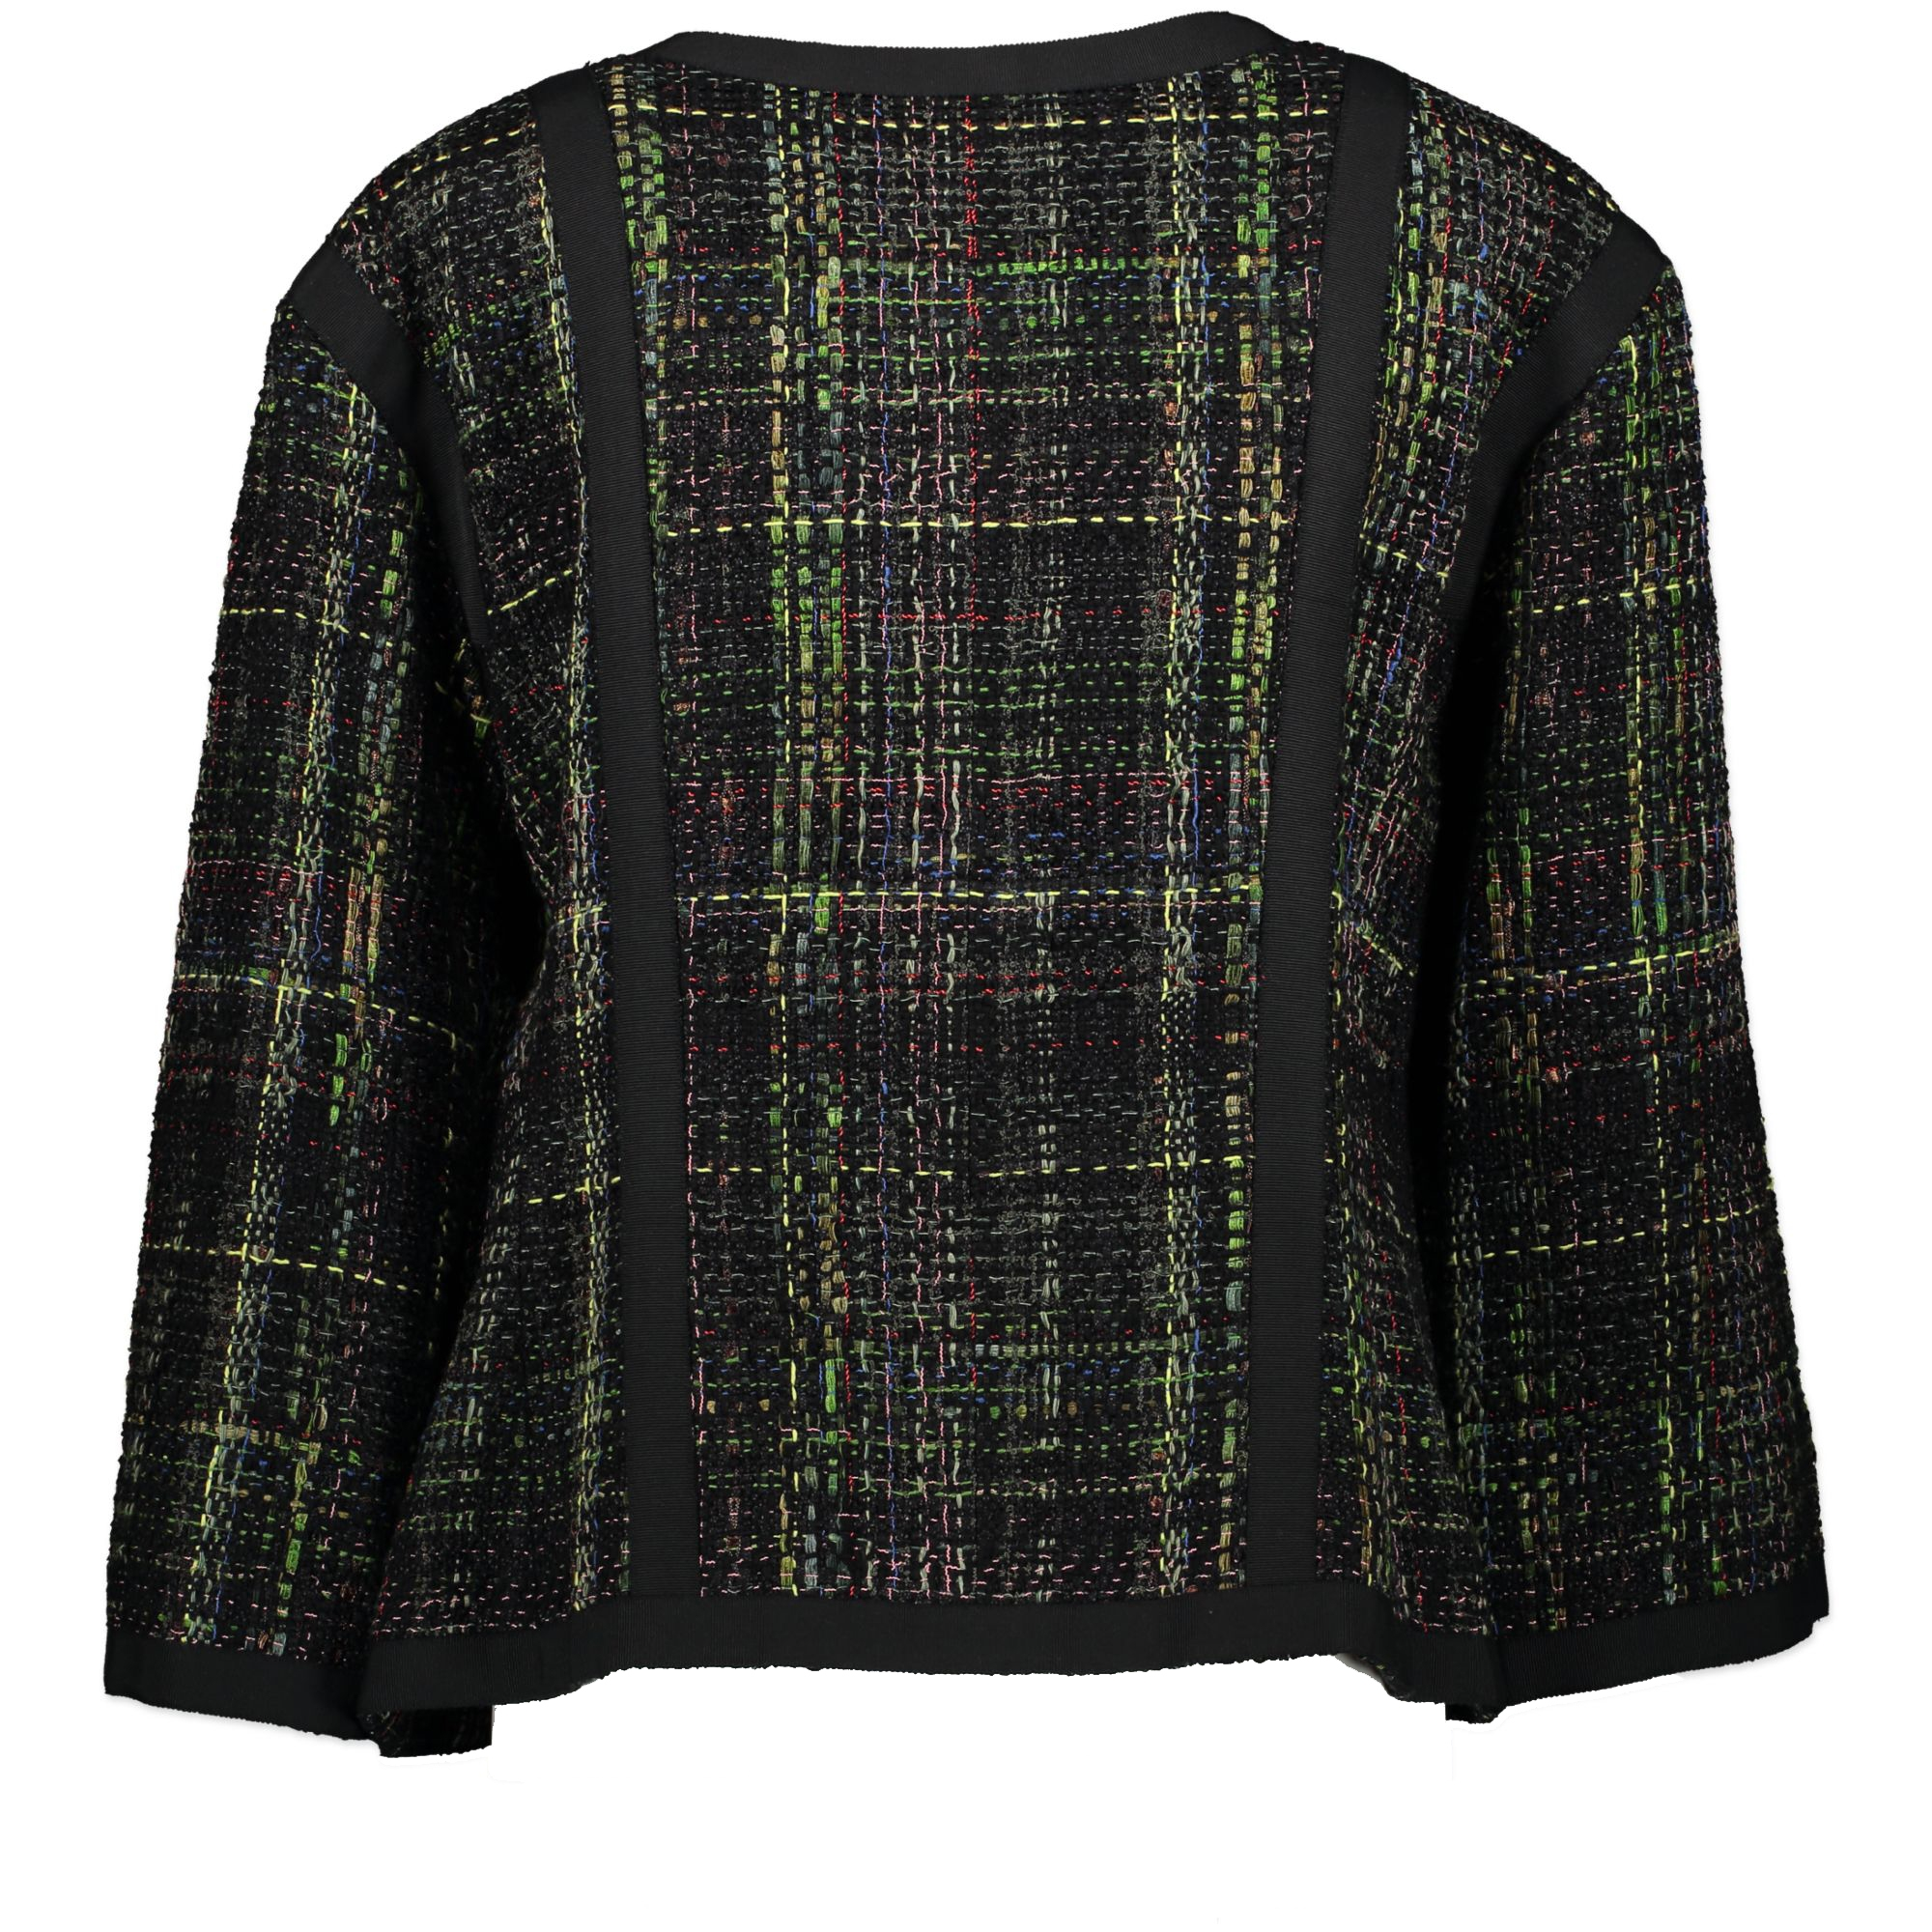 We buy and sell your authentic Chanel Black Green Tweed Jacket - Size FR 46